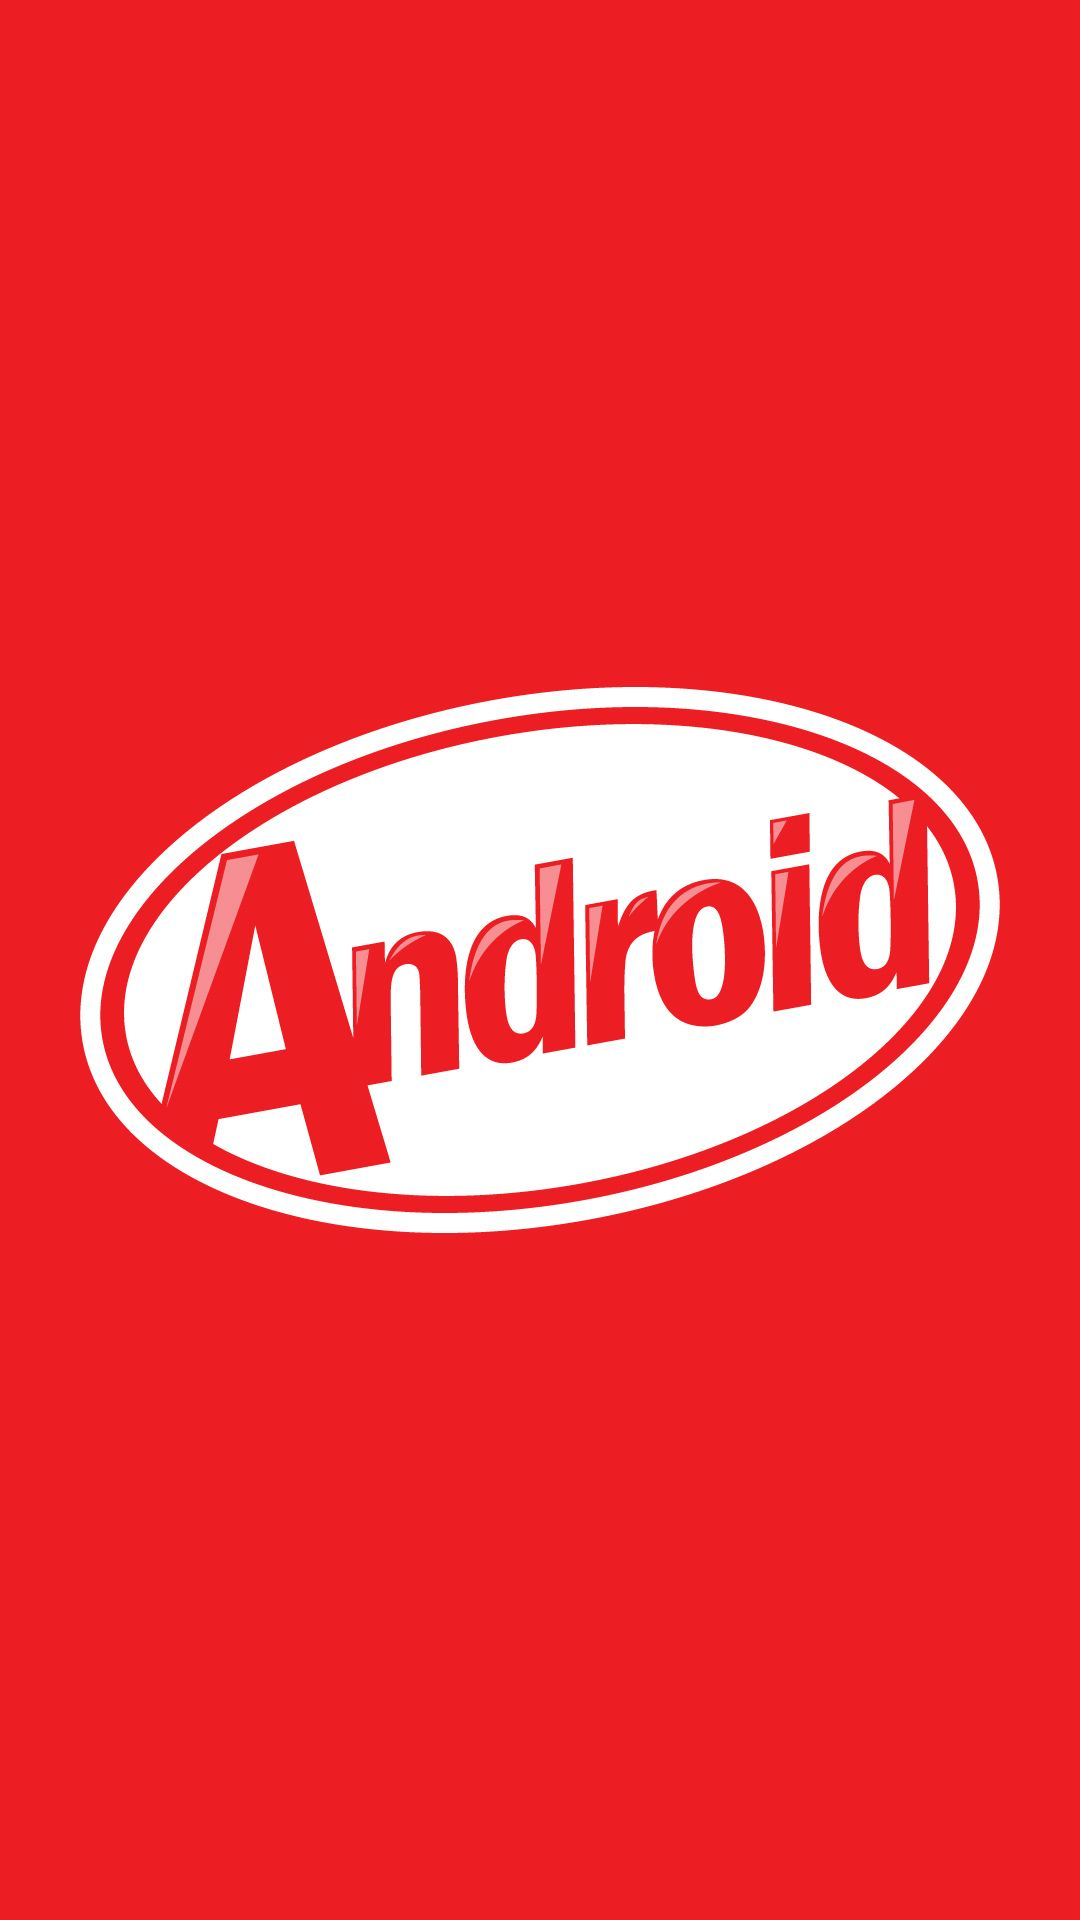 Android kitkat 442 logo wallpaper android wallpapers android kitkat 442 logo wallpaper voltagebd Images